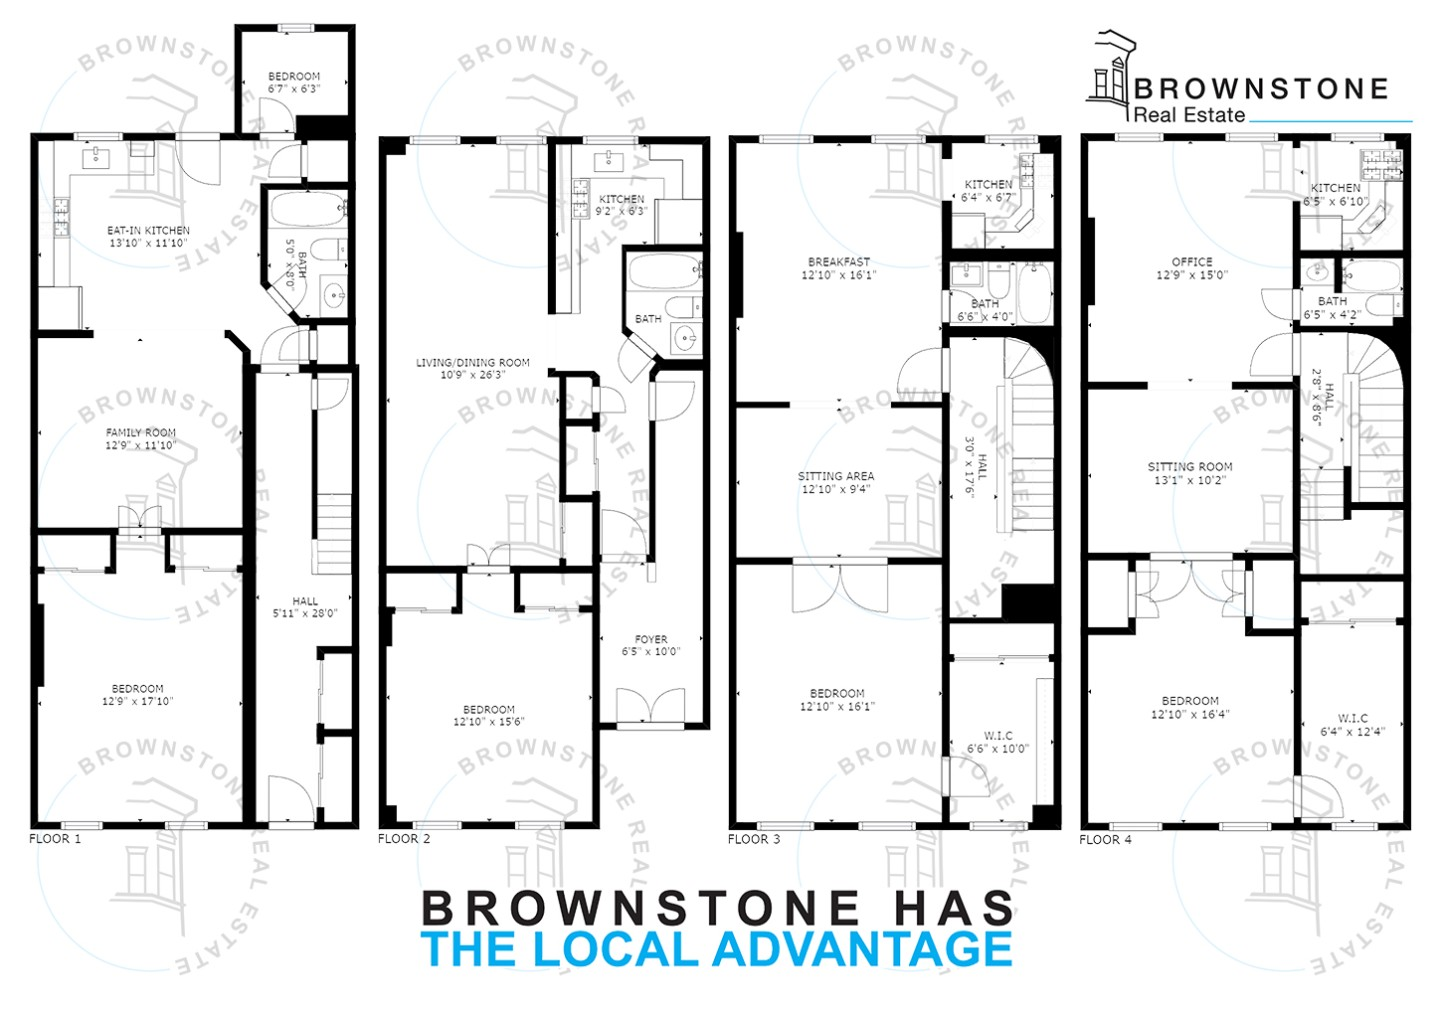 250 President St Brooklyn Ny 11231 Brooklyn Townhouses Carroll Gardens 7 Bedroom Townhouse For Sale